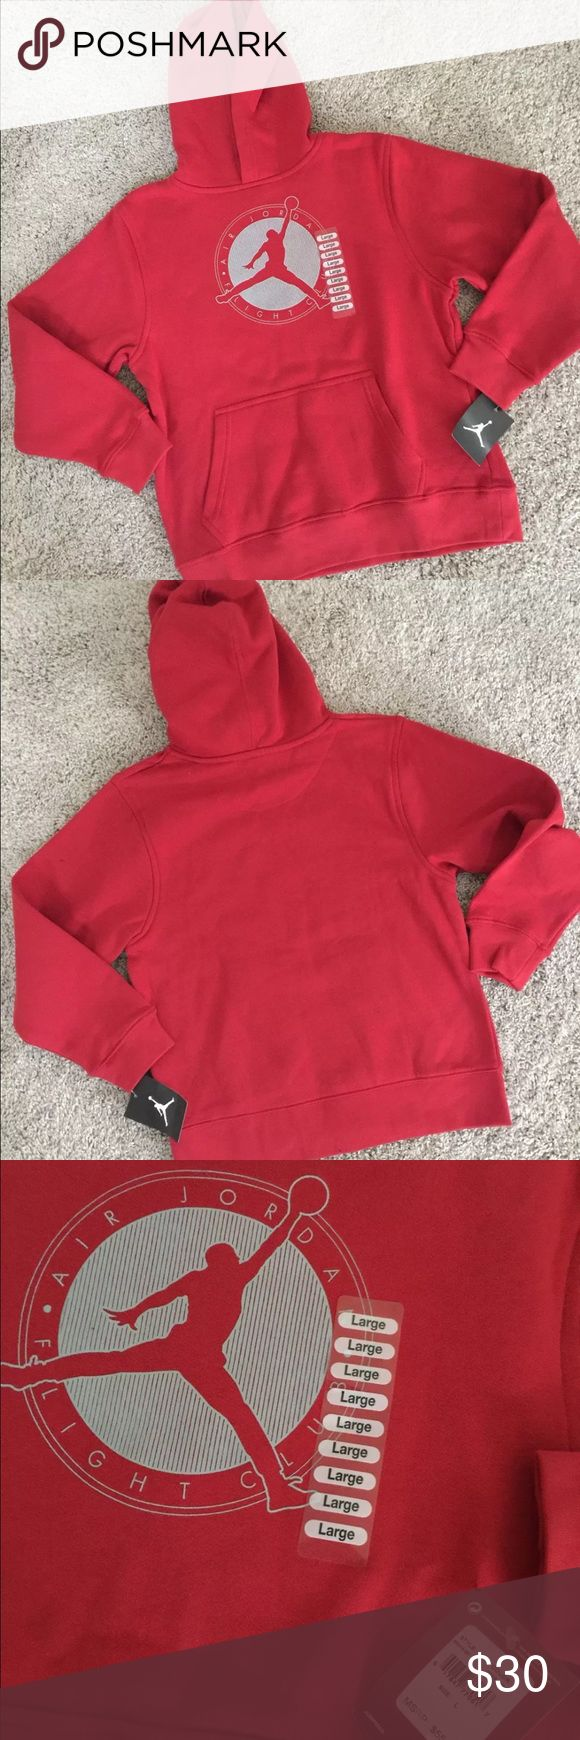 New Boys Nike Red Air Jordan Flight Sweatshirt L Brand new with tags Nike Air Jordan red hooded pullover sweatshirt. Grey silhouette with AIR JORDAN FLIGHT CLUB around the circle. Front pocket. Size Large (12-13 years). MSRP $55. Nike Shirts & Tops Sweatshirts & Hoodies